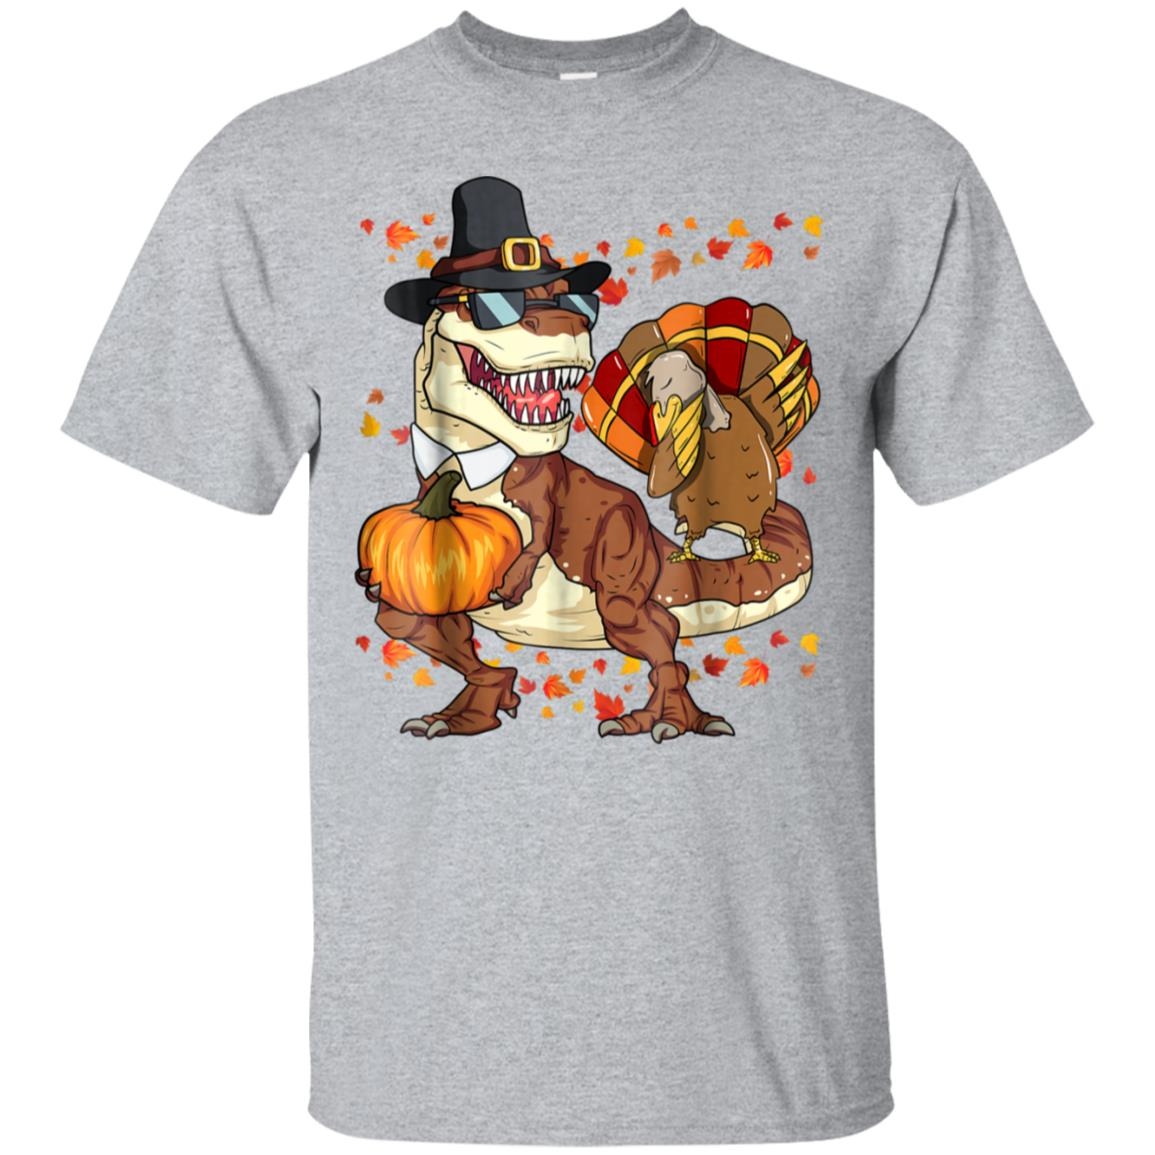 Thanksgiving T-Rex Dinosaur Shirt Dabbing Turkey Shirt Boy 99promocode